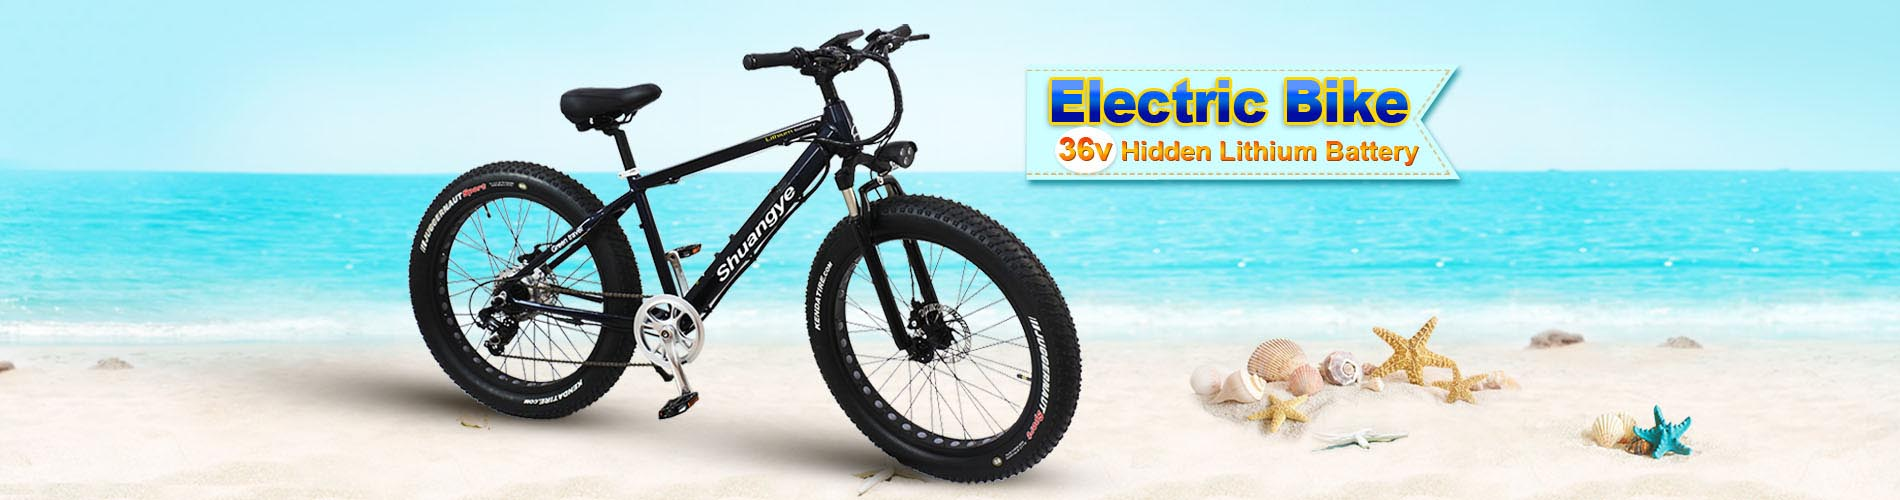 electric bike video